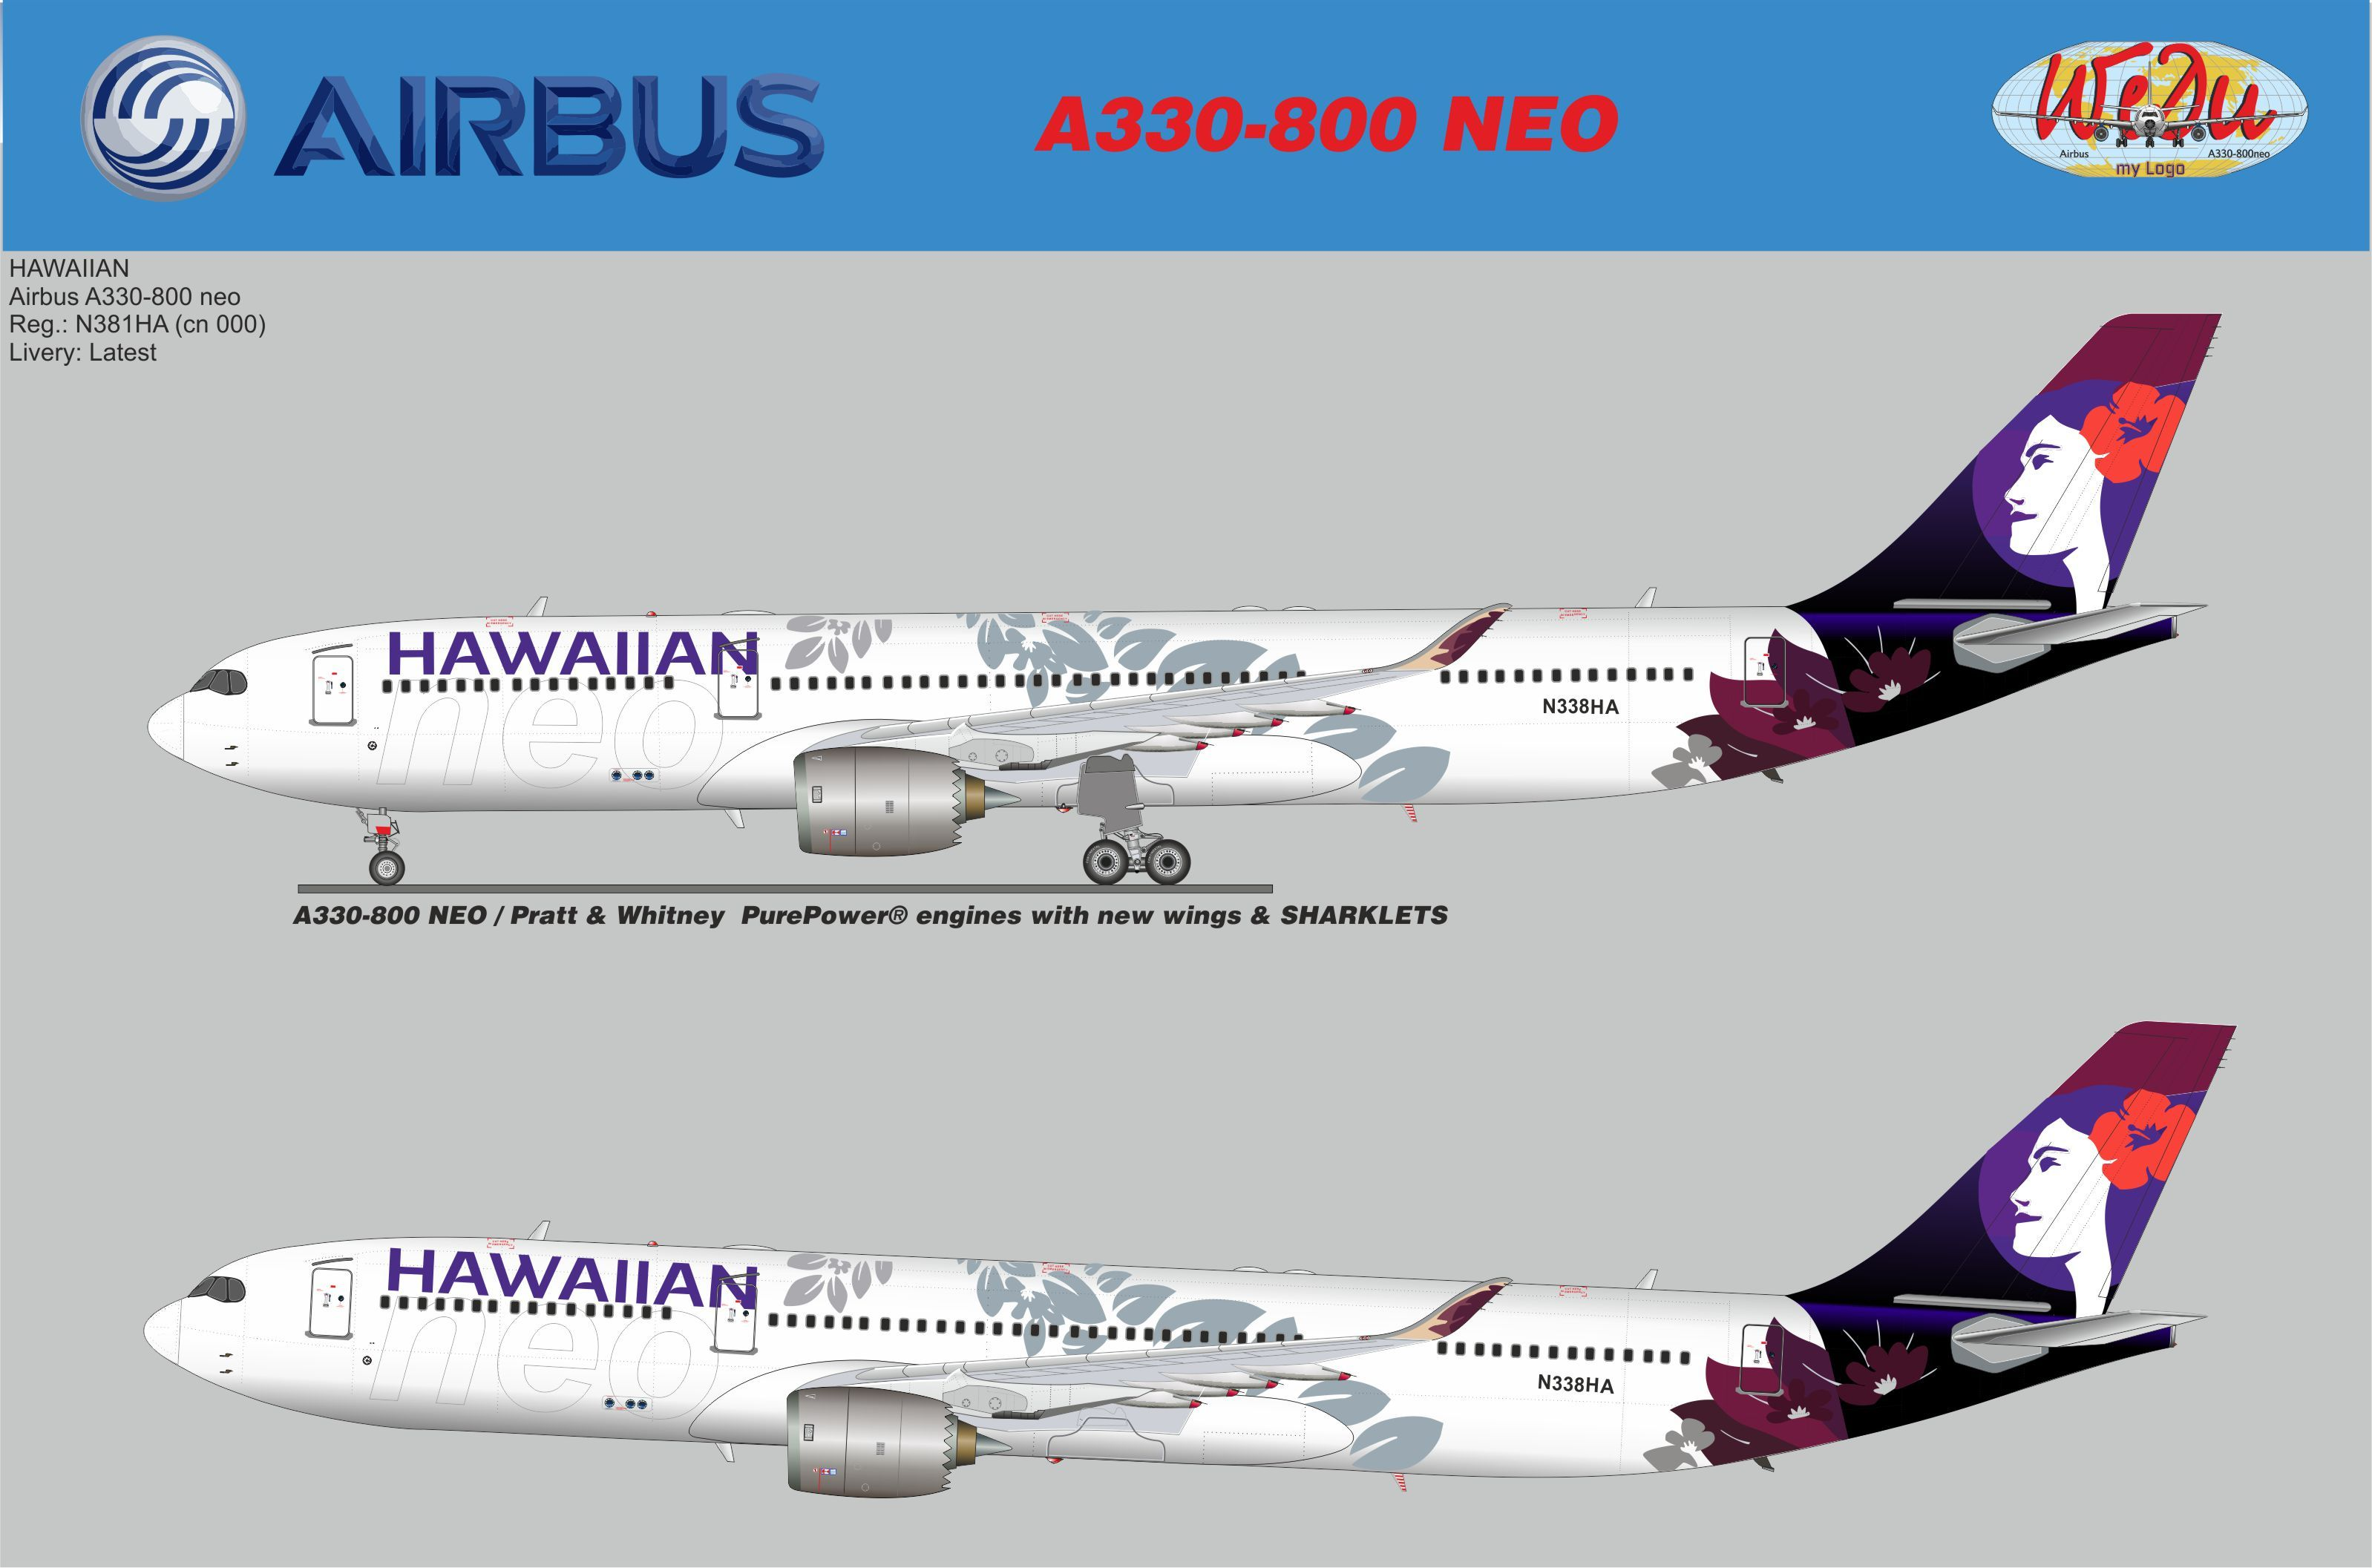 f0a977d0810d NEW Airbus A330-800 NEO in the latets HAWAIIAN livery.